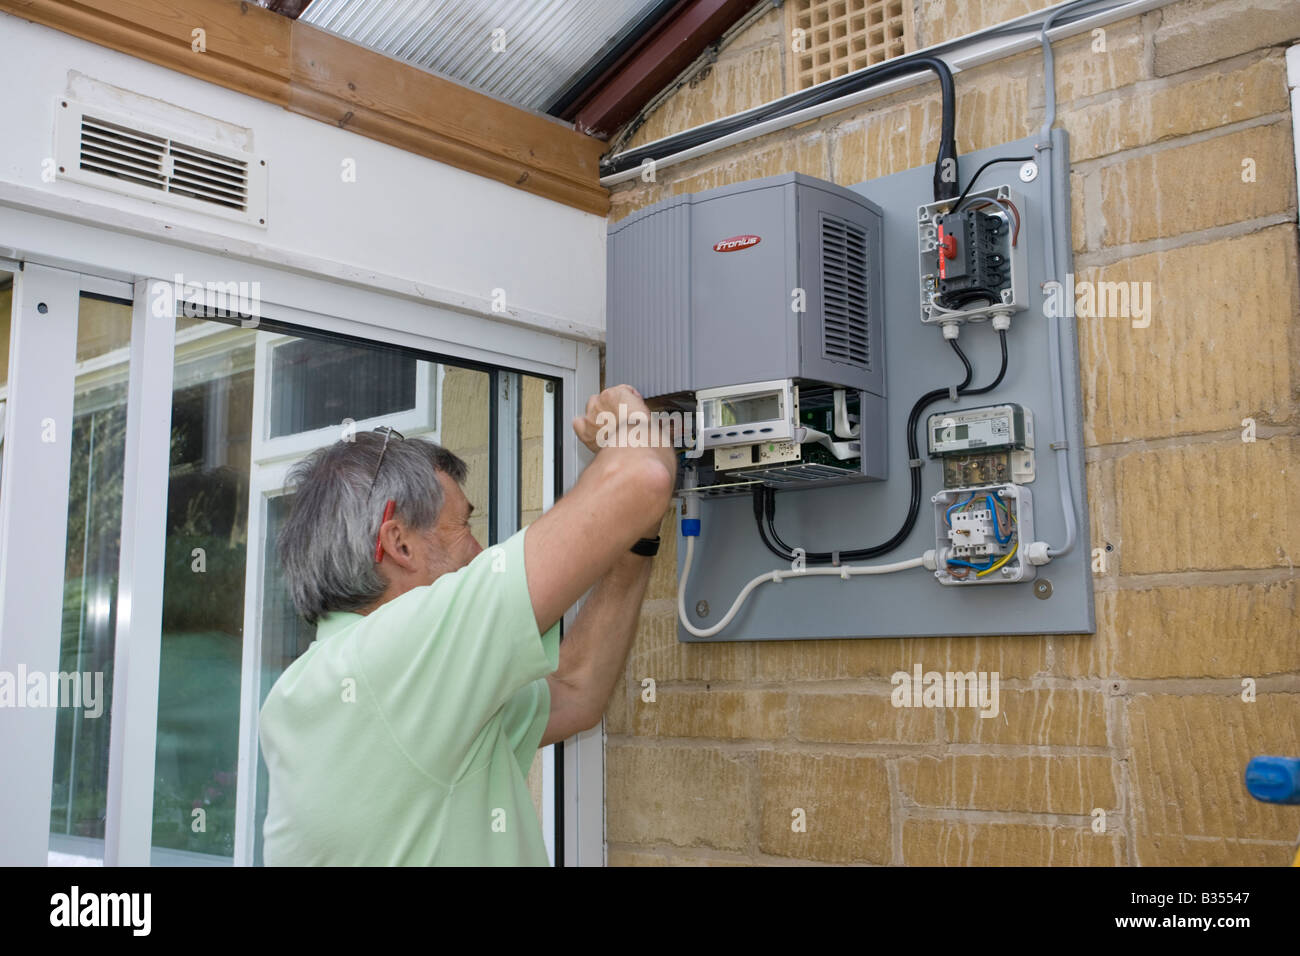 Solar inverter stock photos solar inverter stock images alamy electrician installing fronius inverter to control array of 12 solar pv panels cotswolds uk stock cheapraybanclubmaster Choice Image